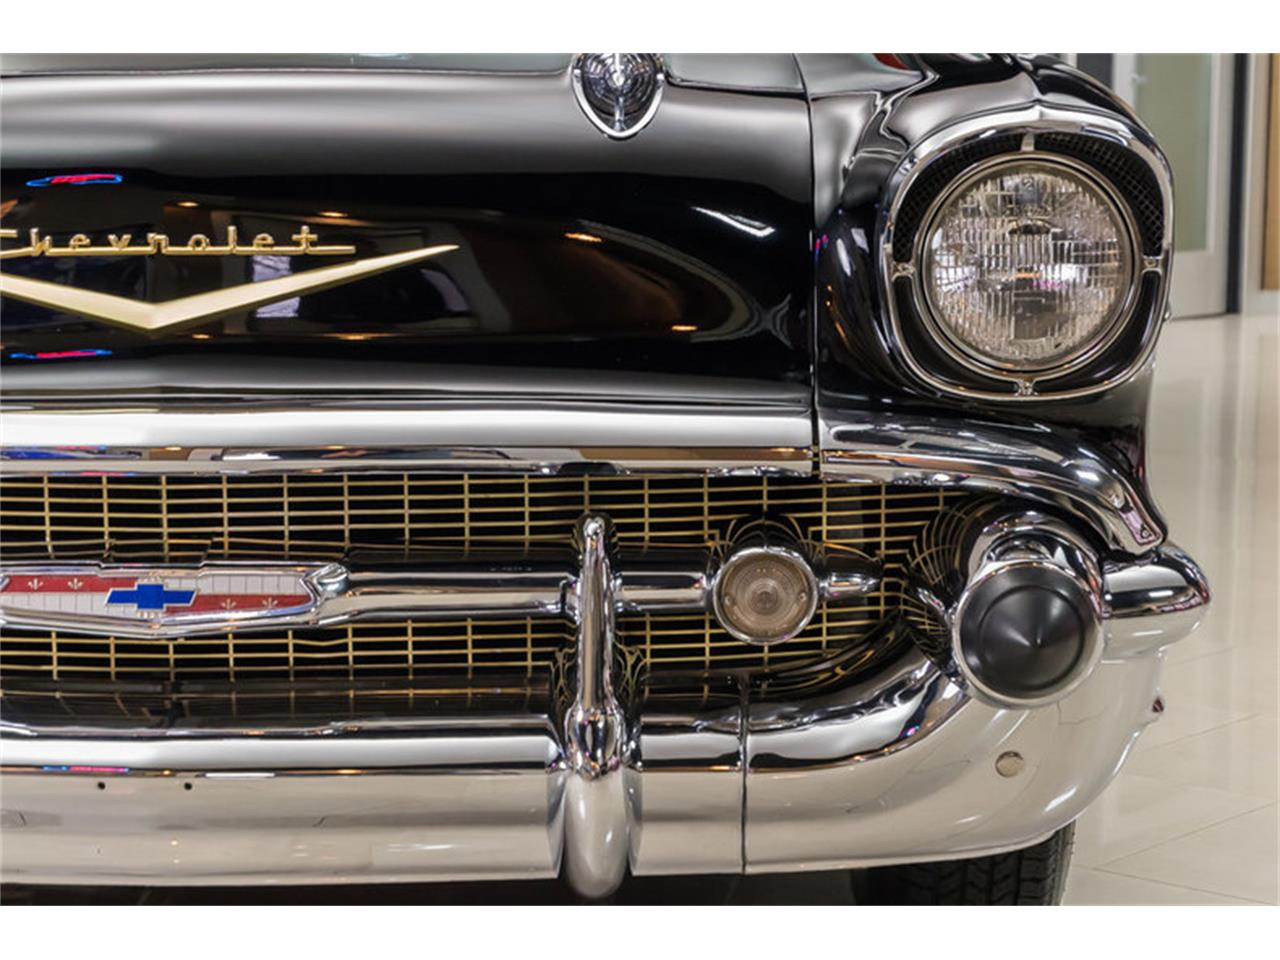 Large Picture of Classic '57 Chevrolet Bel Air located in Michigan - $59,900.00 Offered by Vanguard Motor Sales - M90R